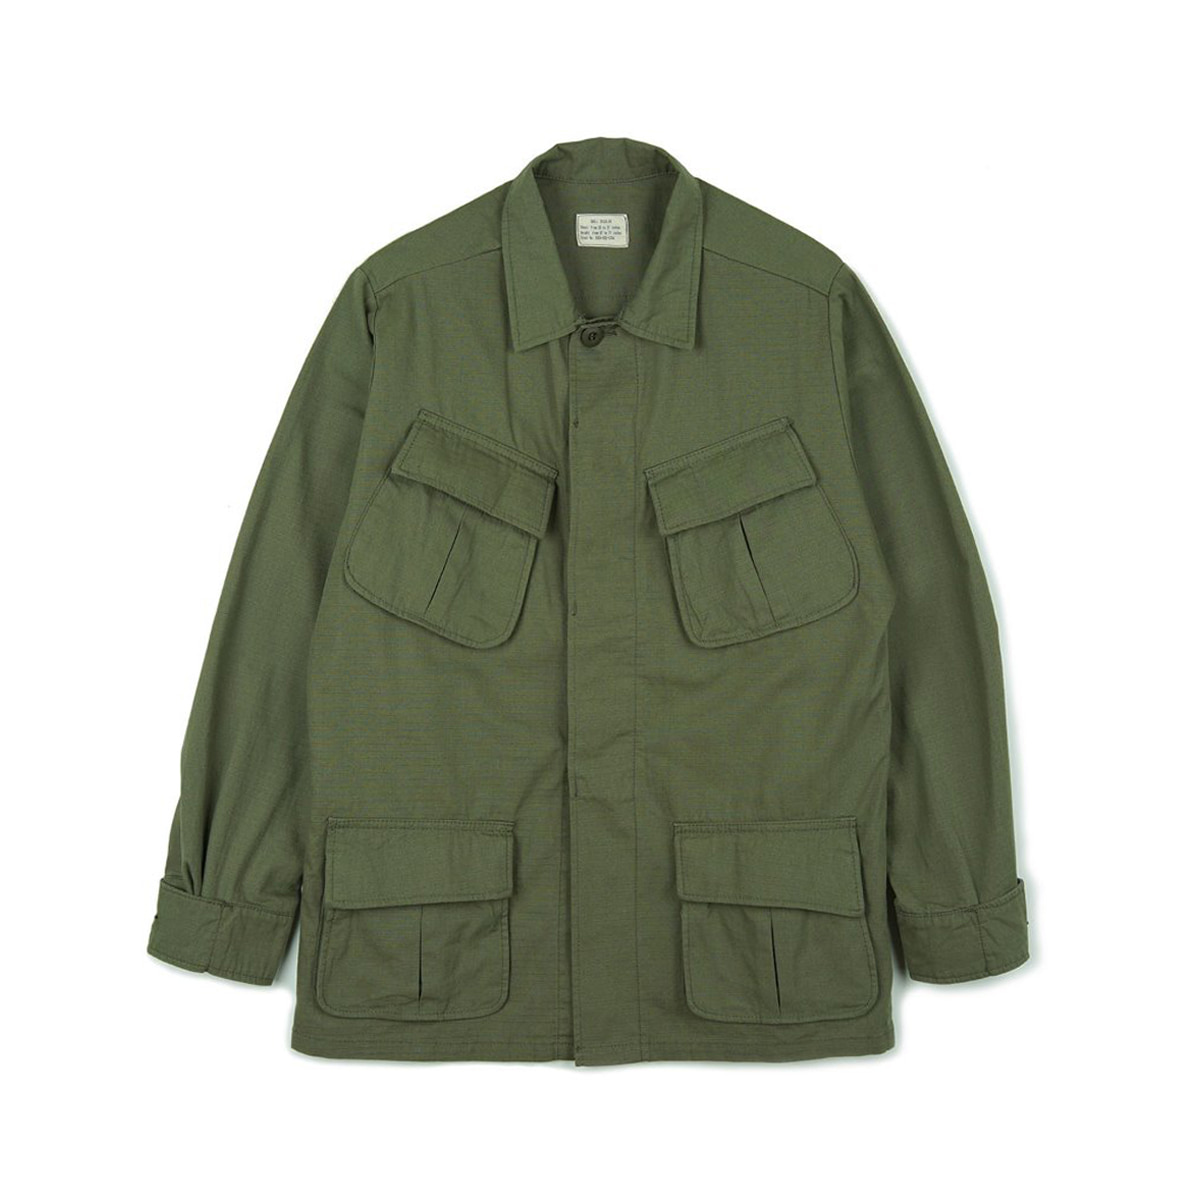 [YMCLKY] US JUNGLE FATIGUE JACKET 4TH MODEL 'OLIVE'